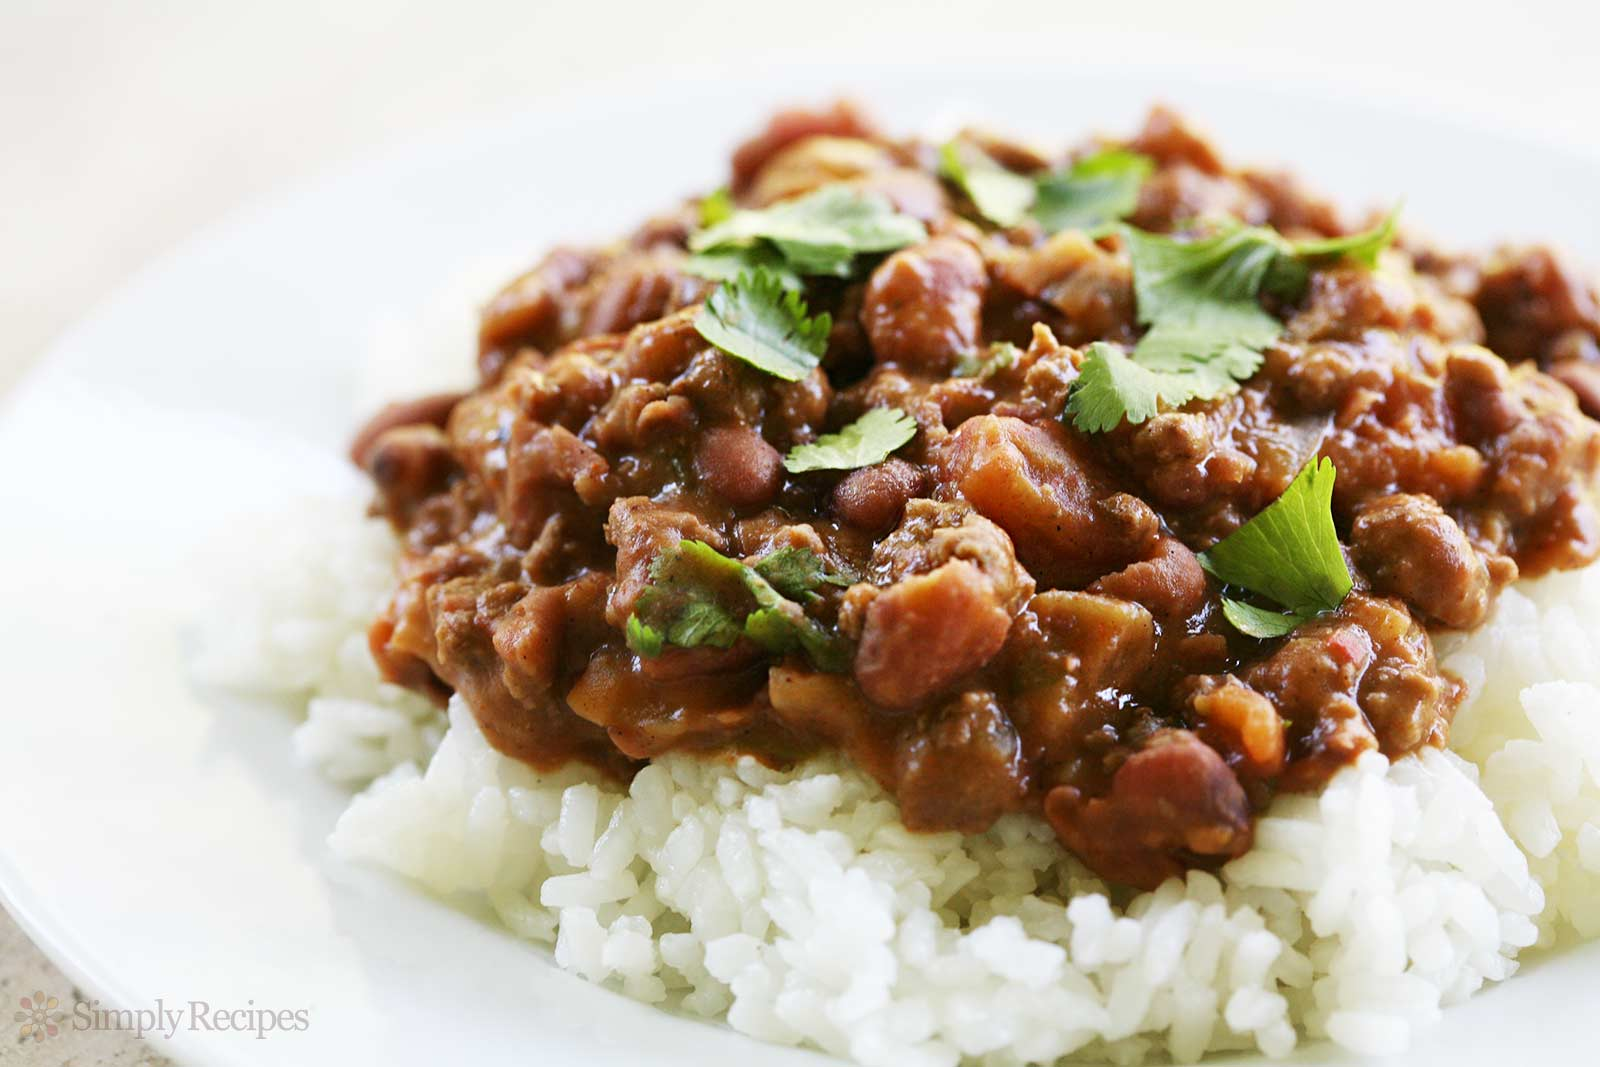 Chili Beef and Beans